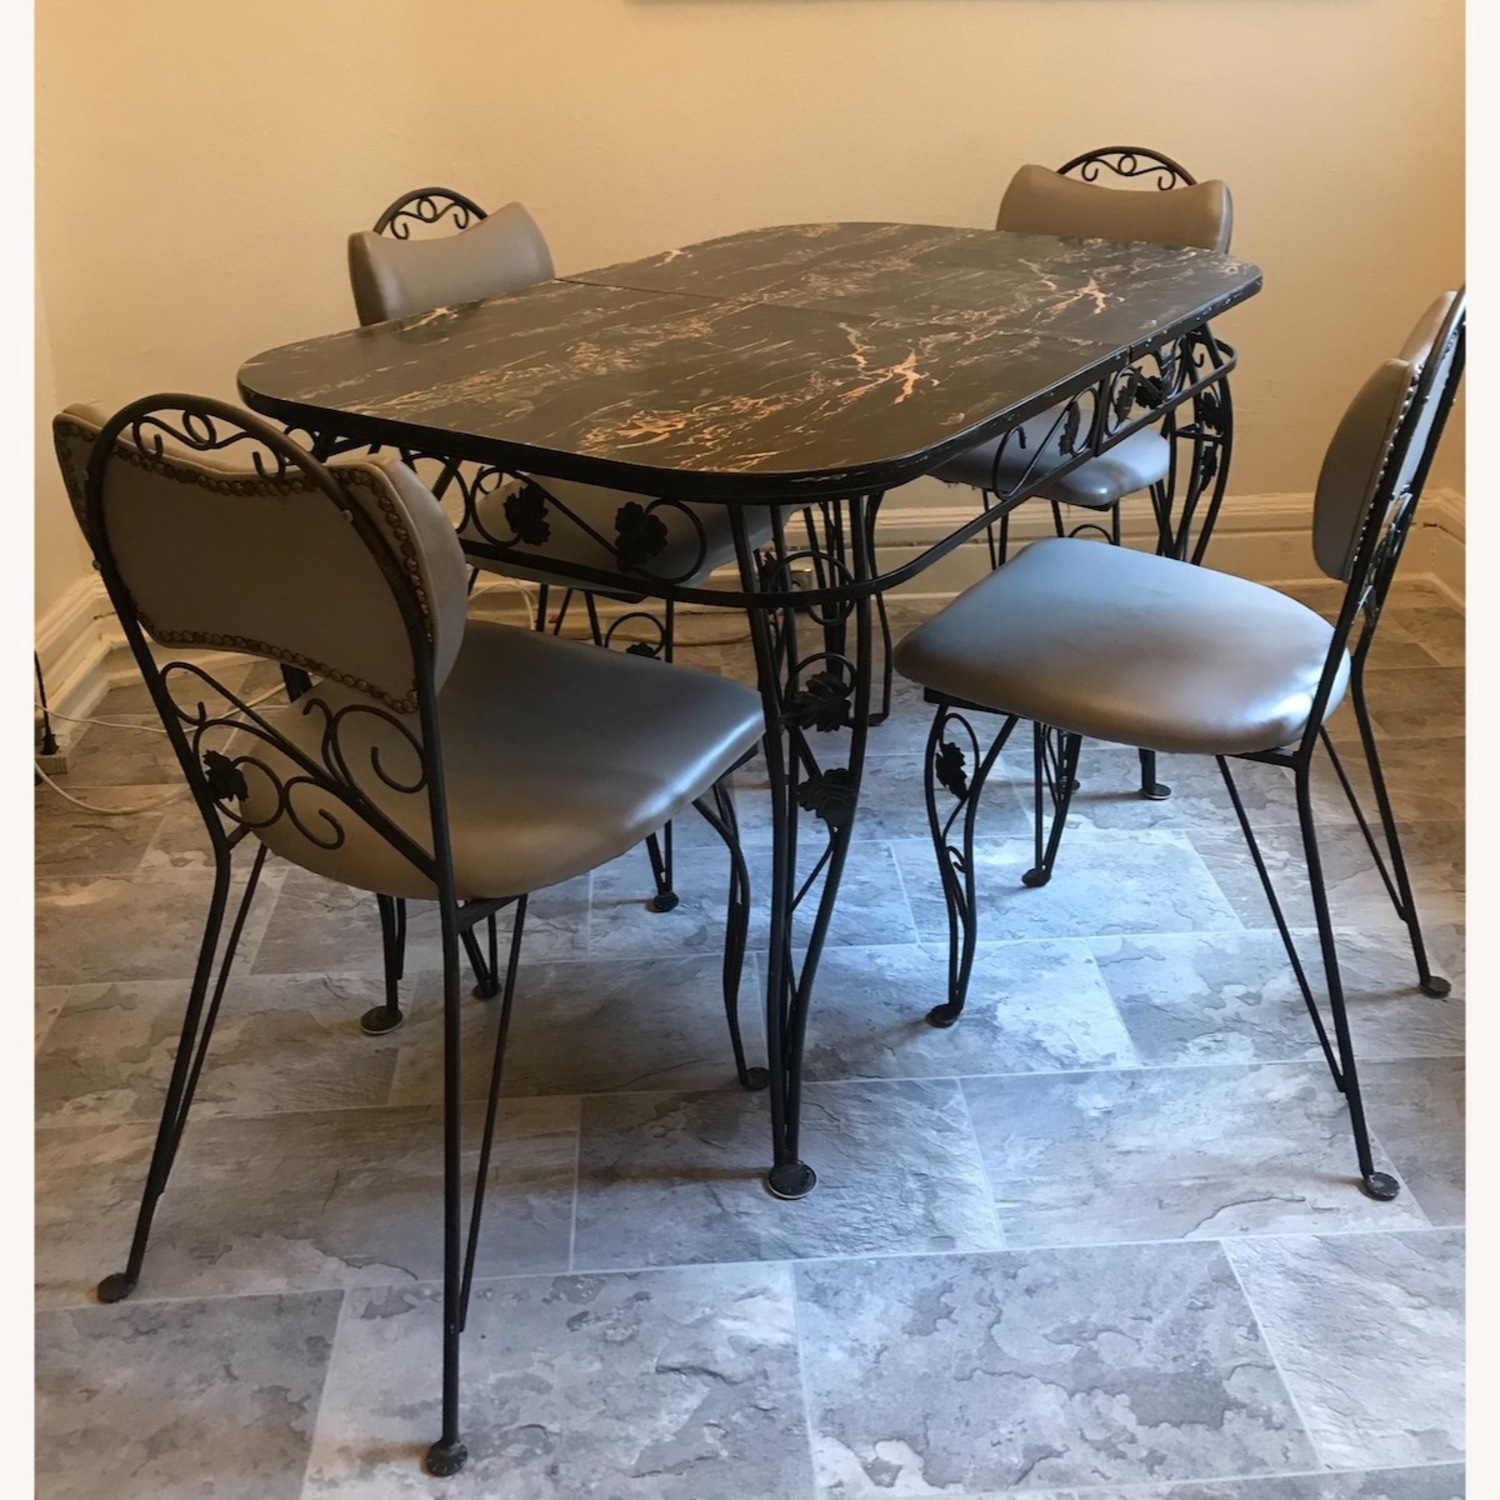 Vintage Wrought Iron / Formica Kitchen Table - image-7